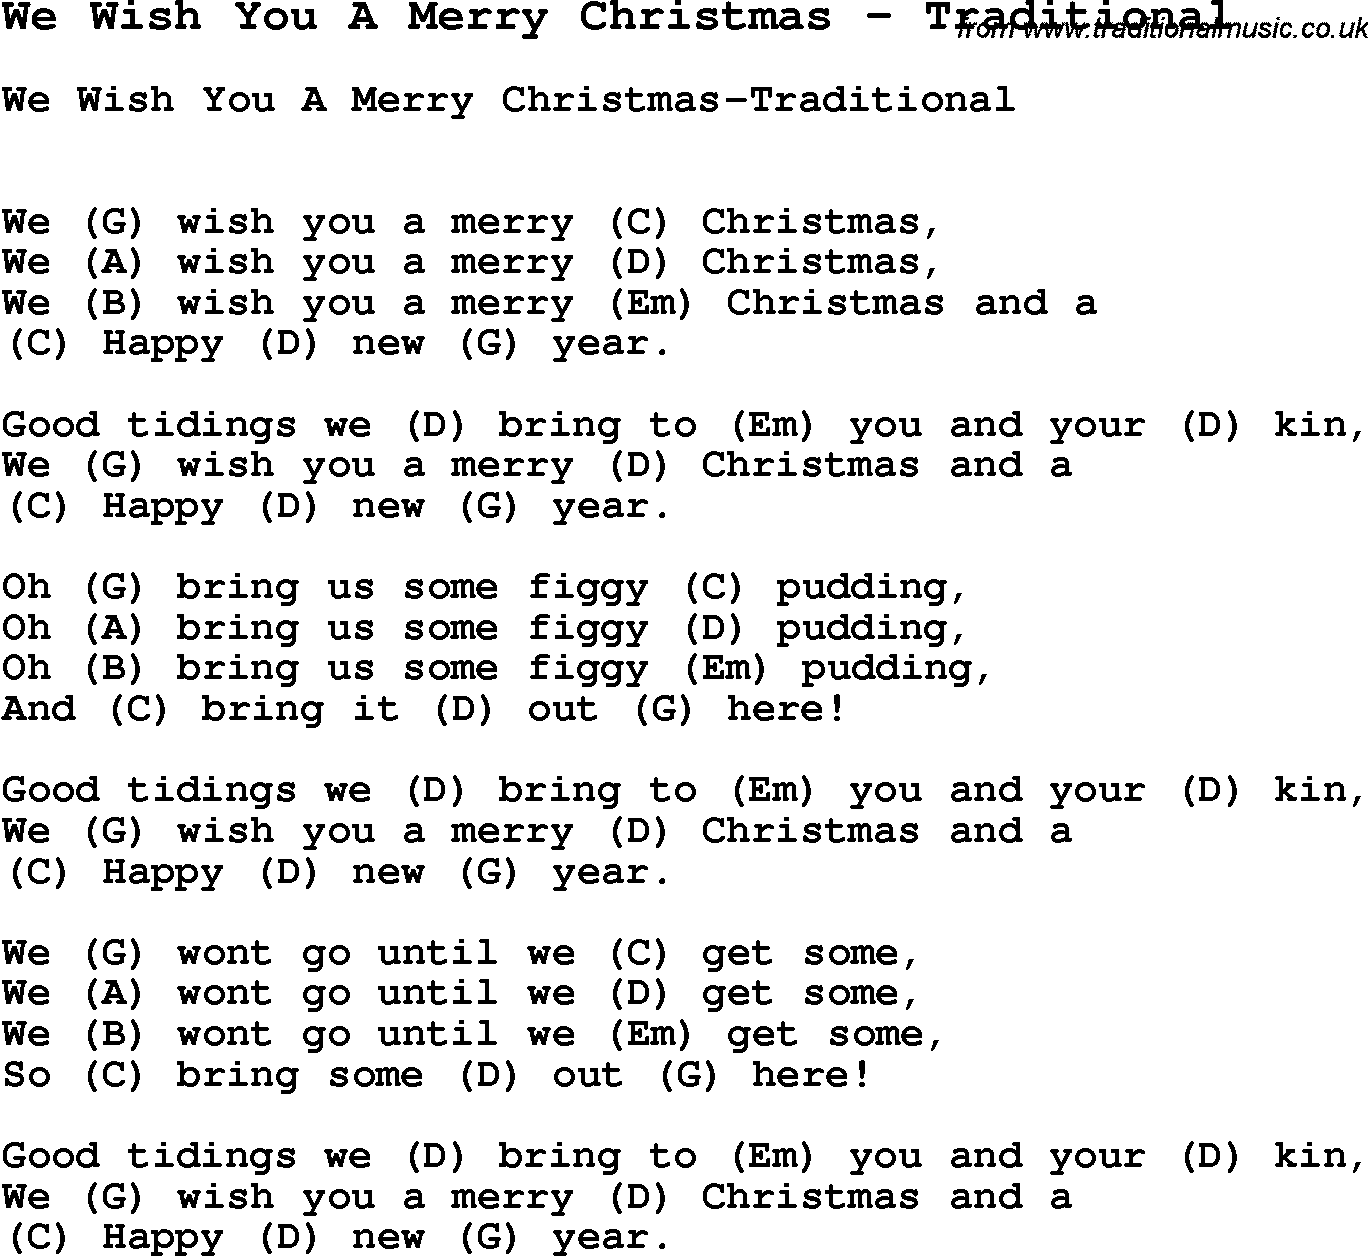 We Wish You A Merry Christmas Ukulele Chords.Song We Wish You A Merry Christmas By Traditional Song